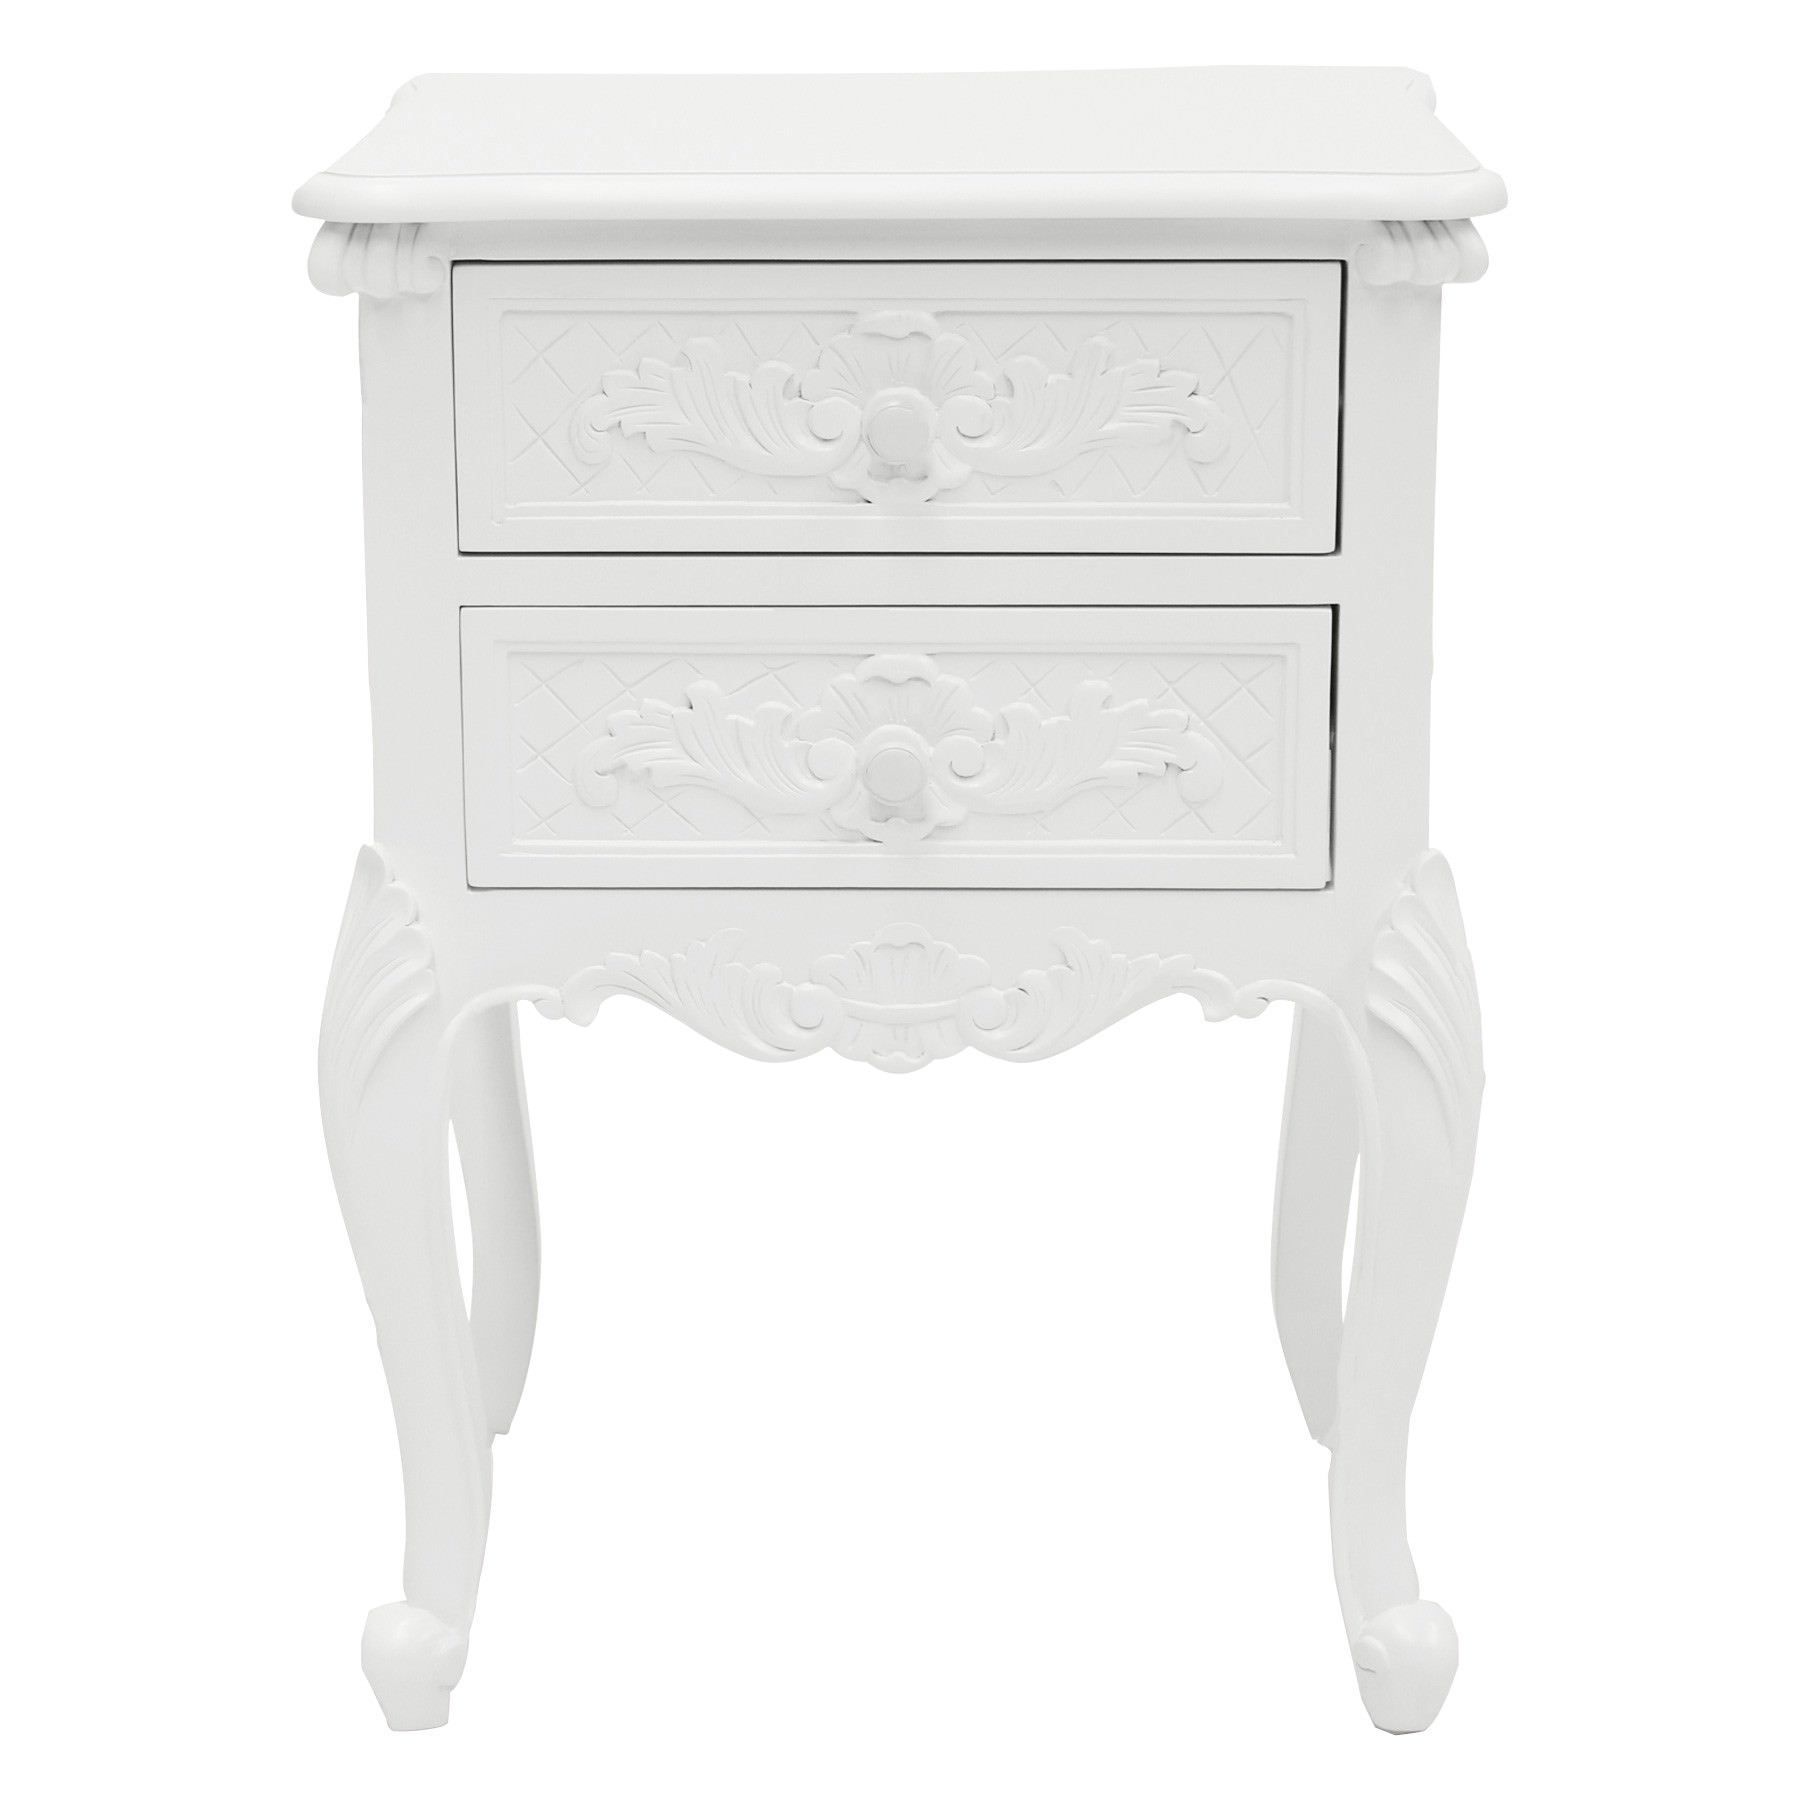 Challuy Hand Crafted Mahogany Bedside Table, White